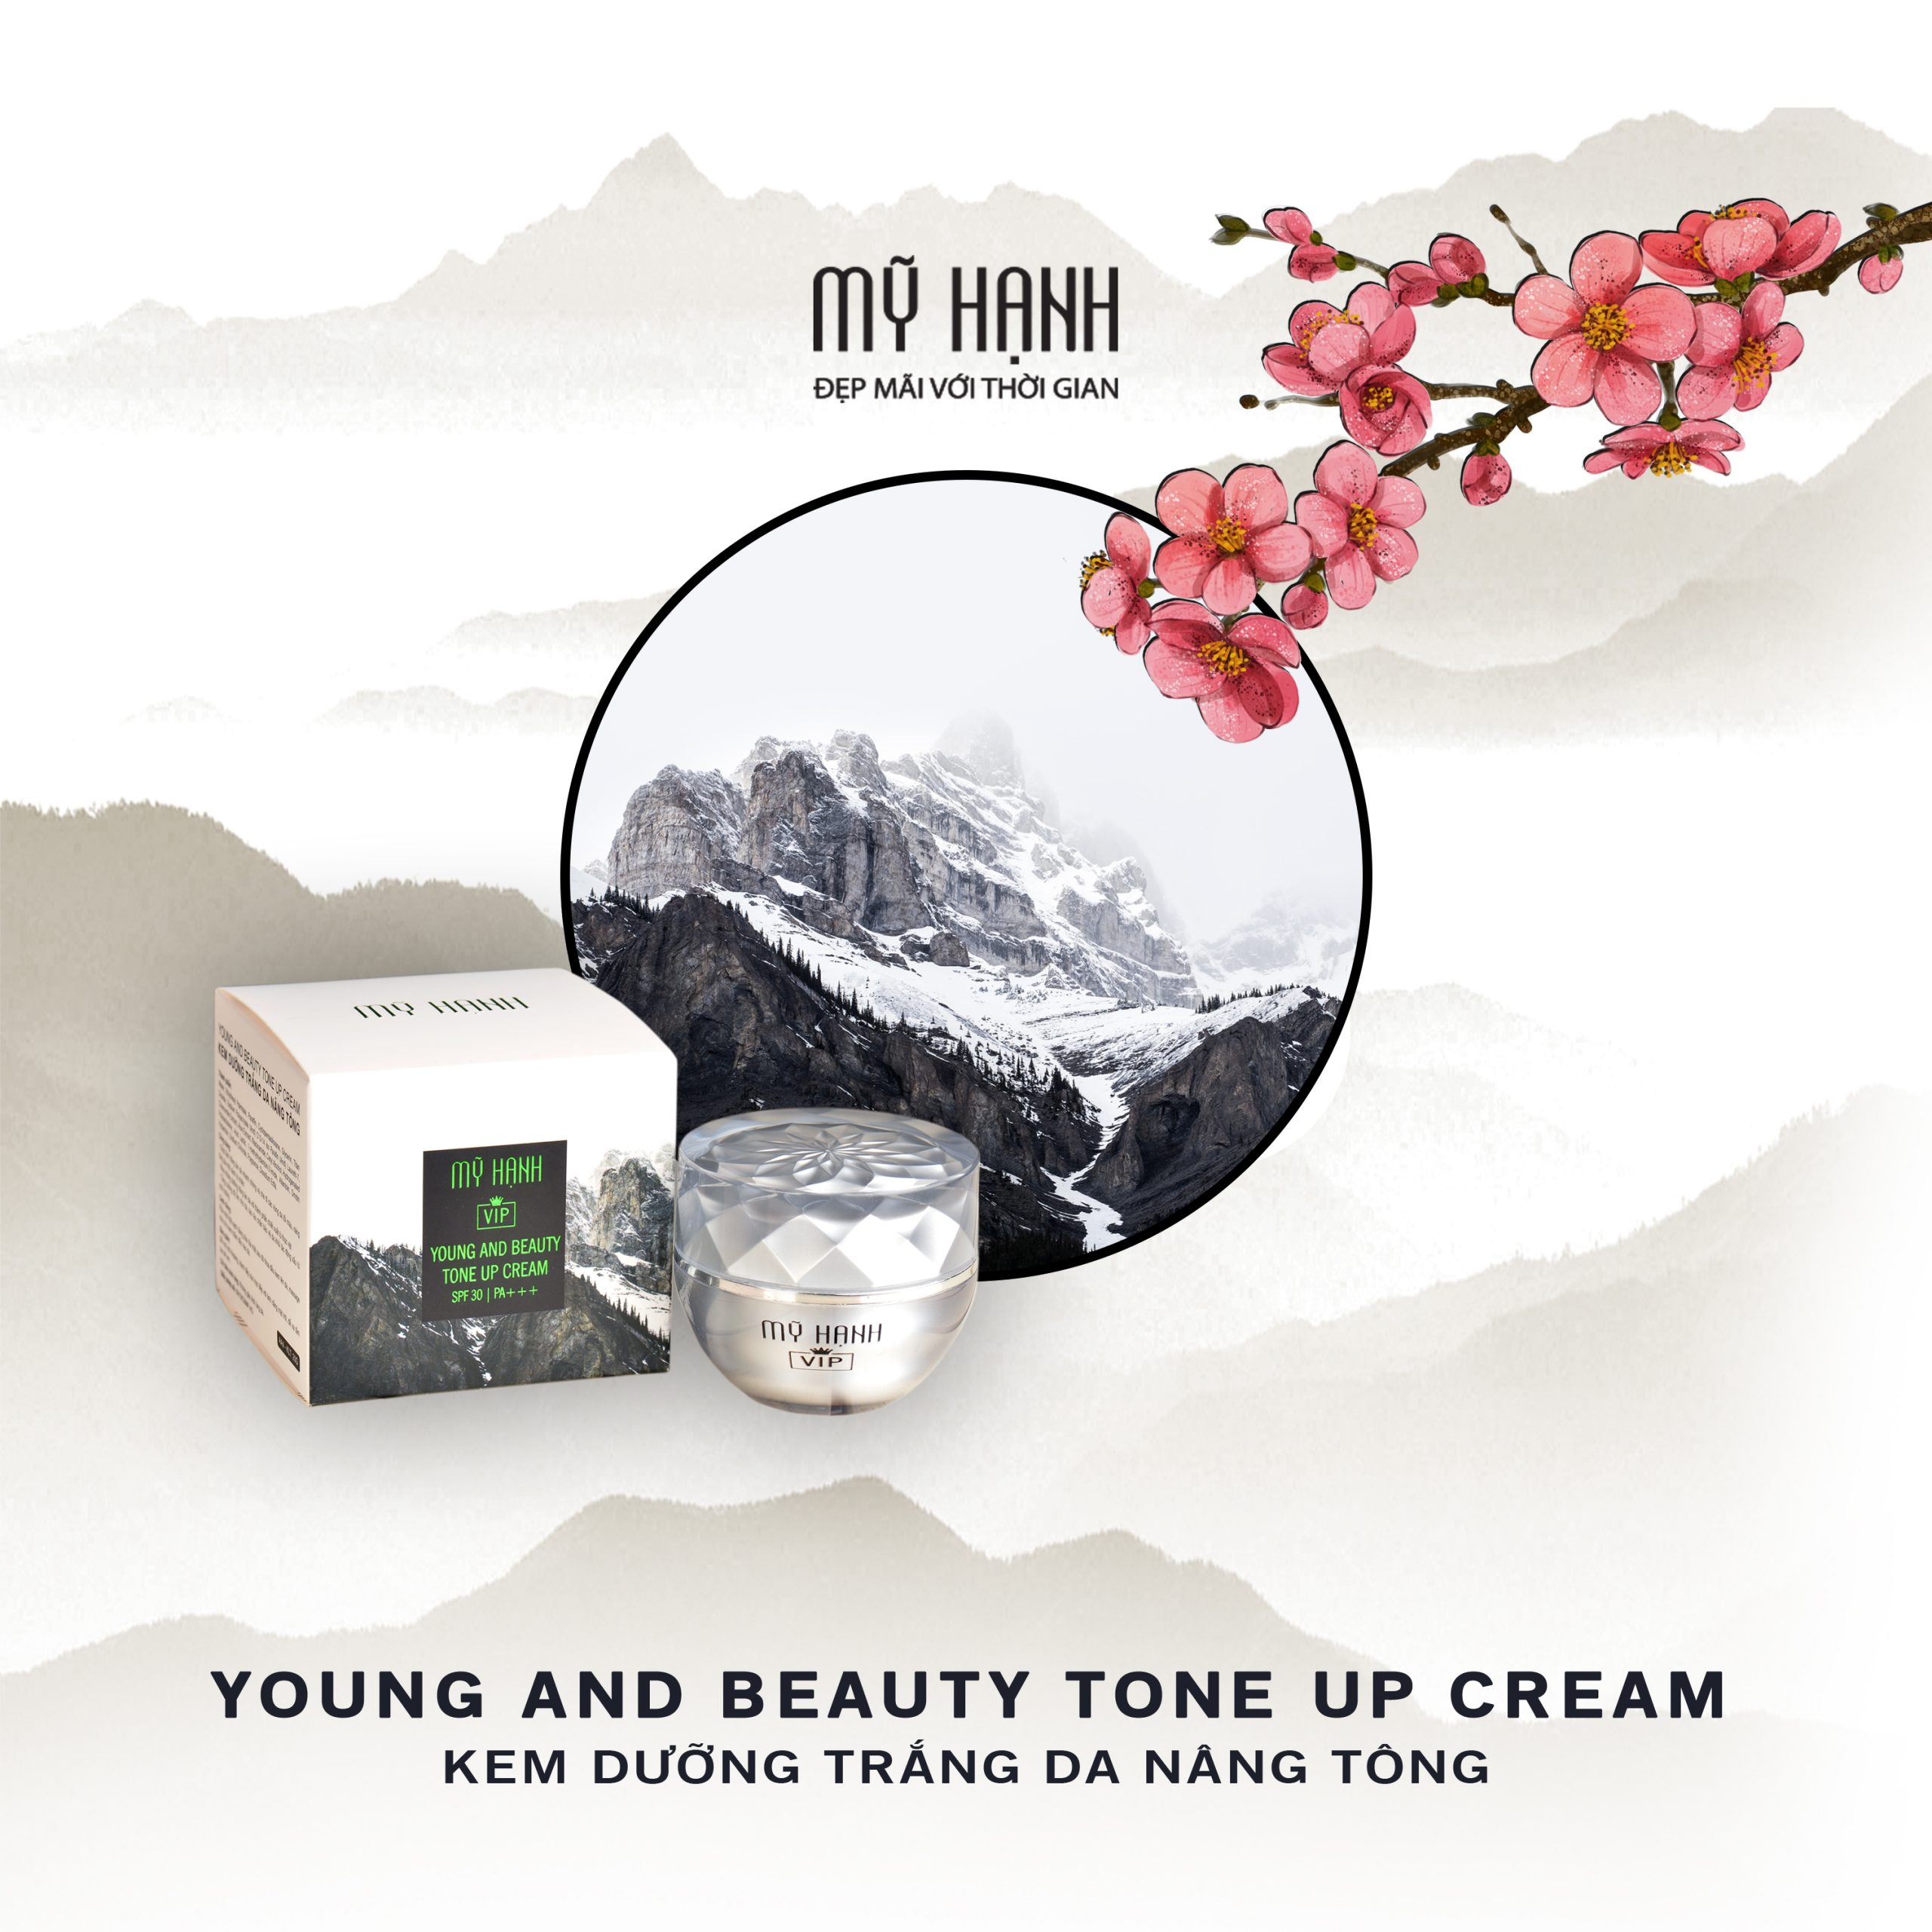 YOUNG AND BEAUTY TONE UP CREAM